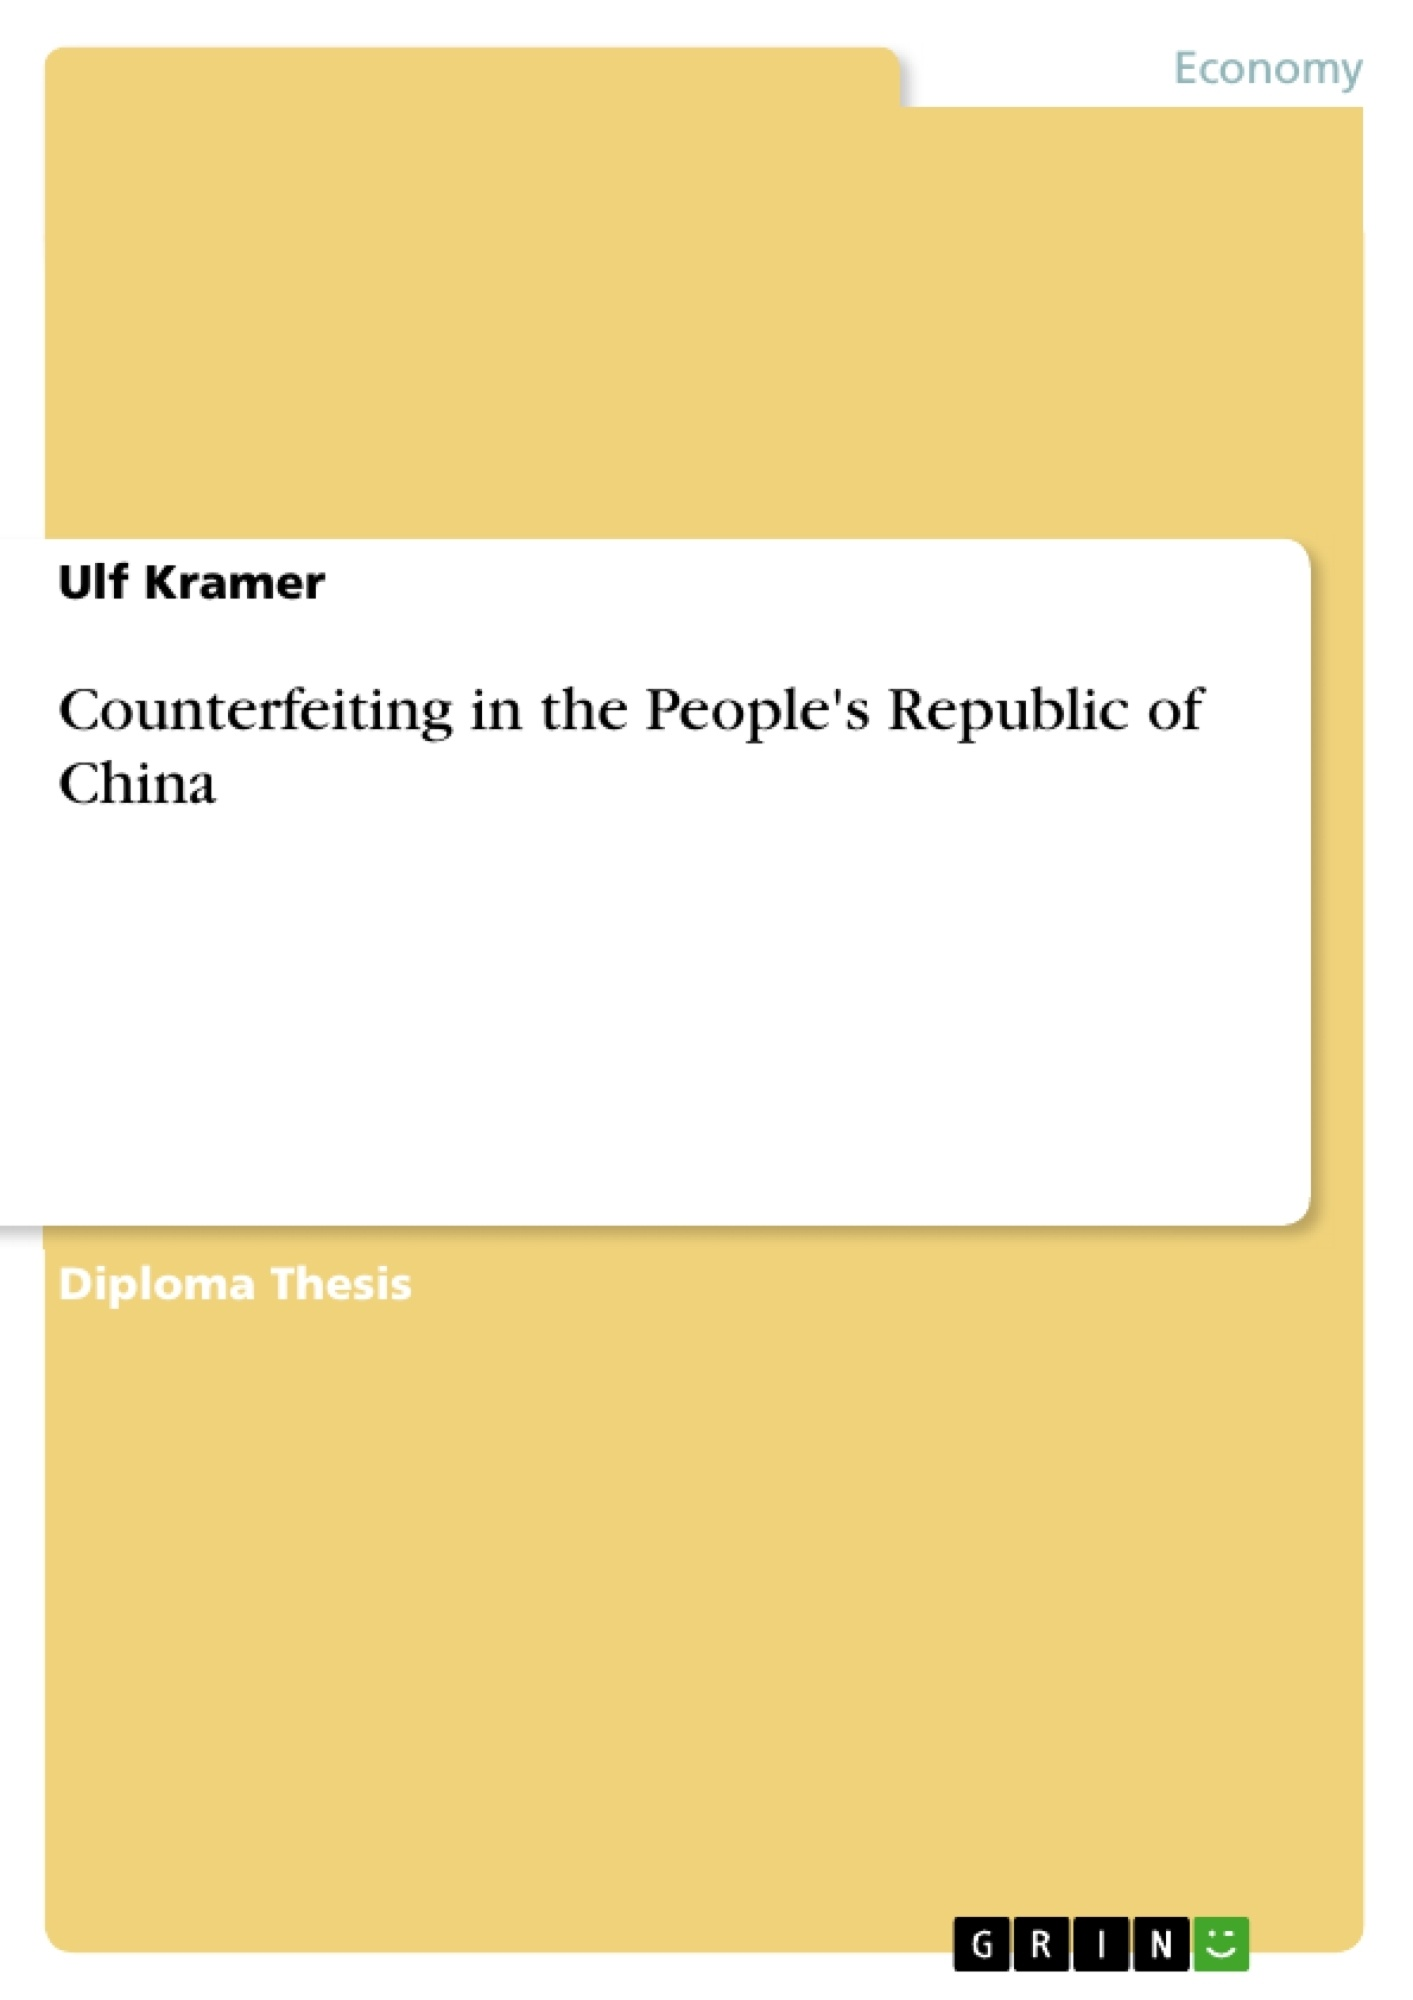 Title: Counterfeiting in the People's Republic of China